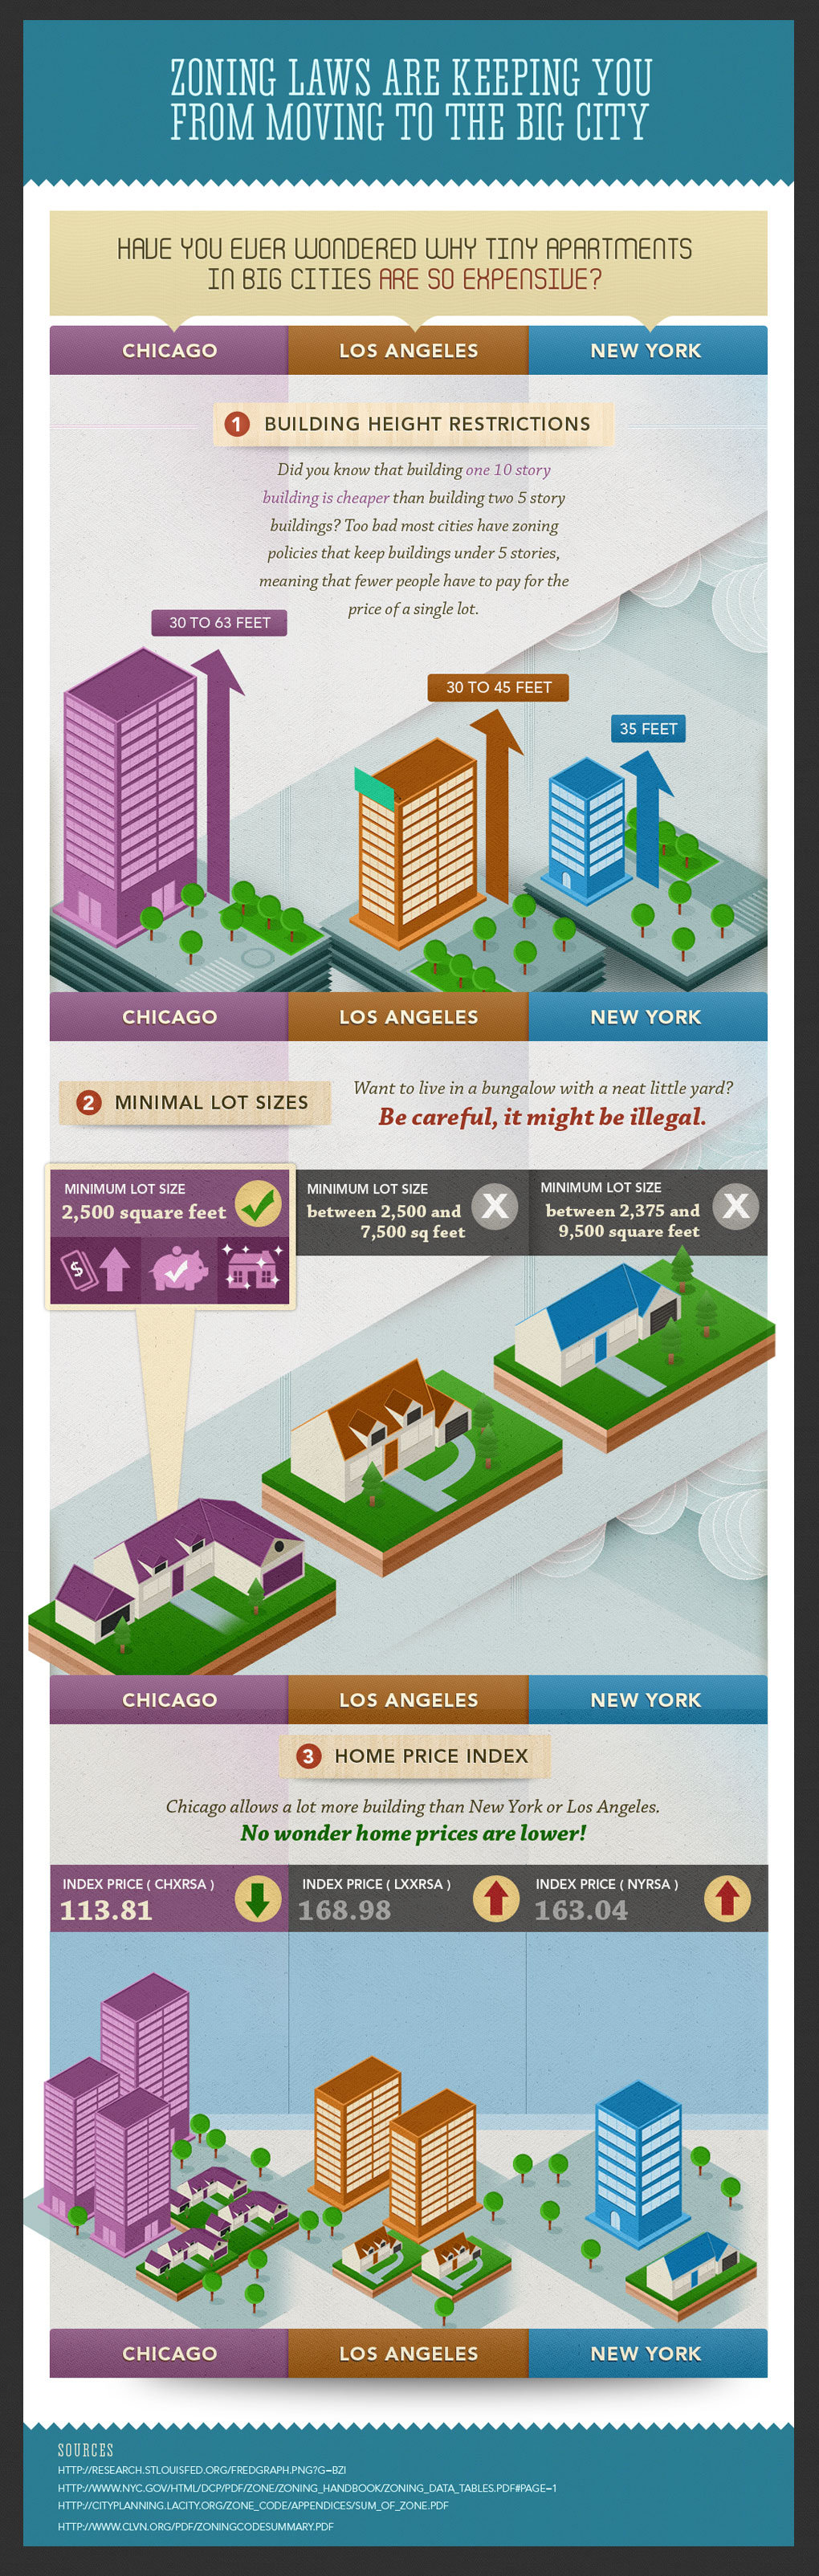 Zoning Laws Infographic